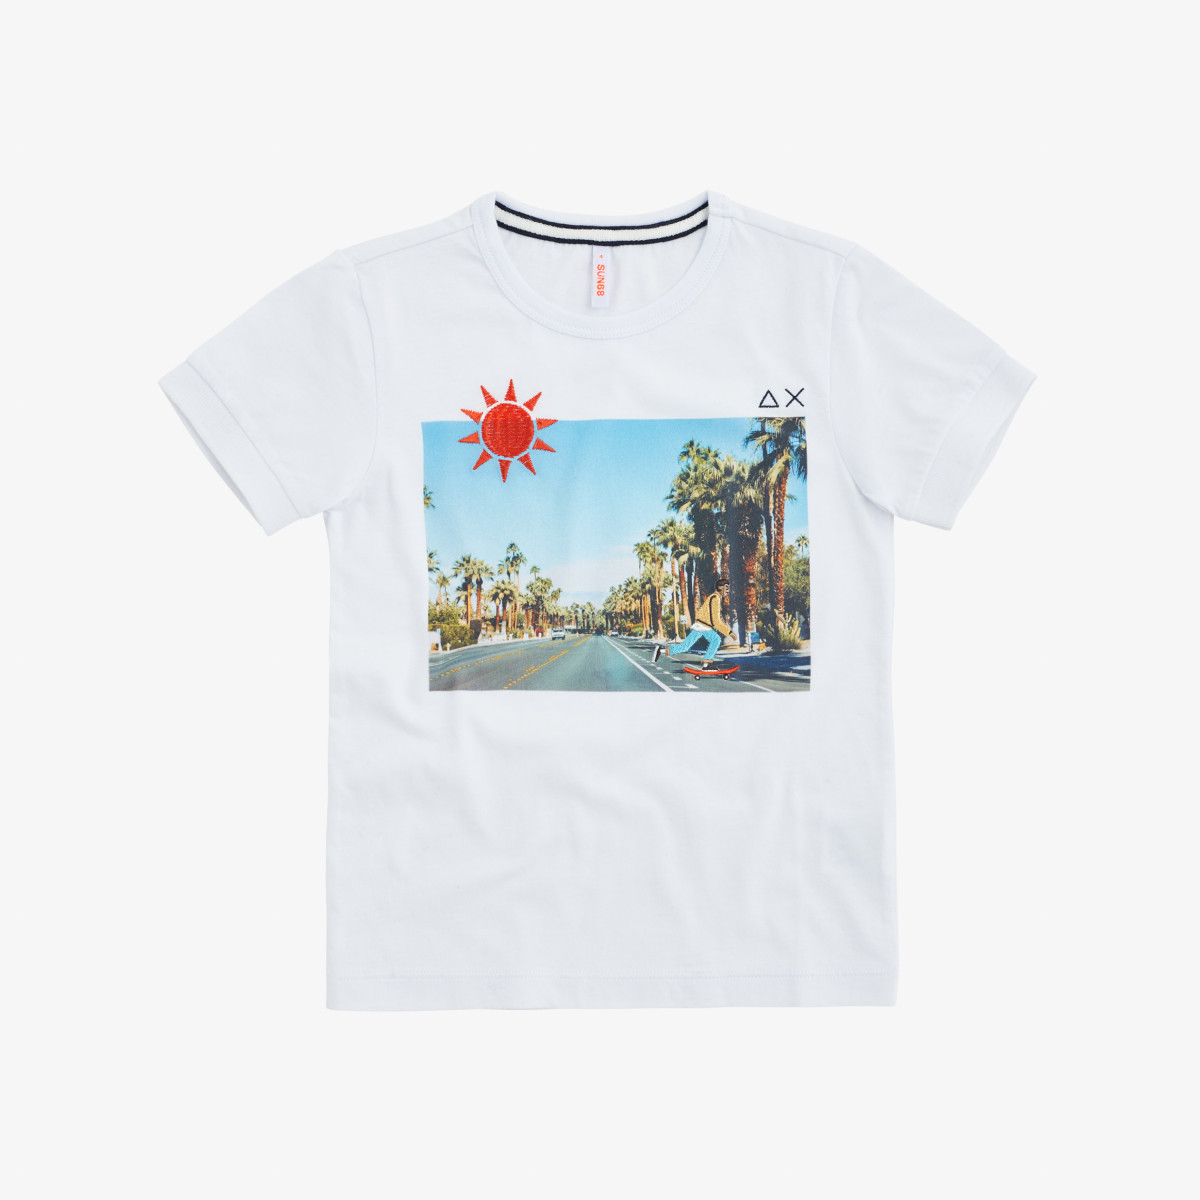 BOY'S T-SHIRT ROUND PRINT PHOTO WHITE/TURQUOISE